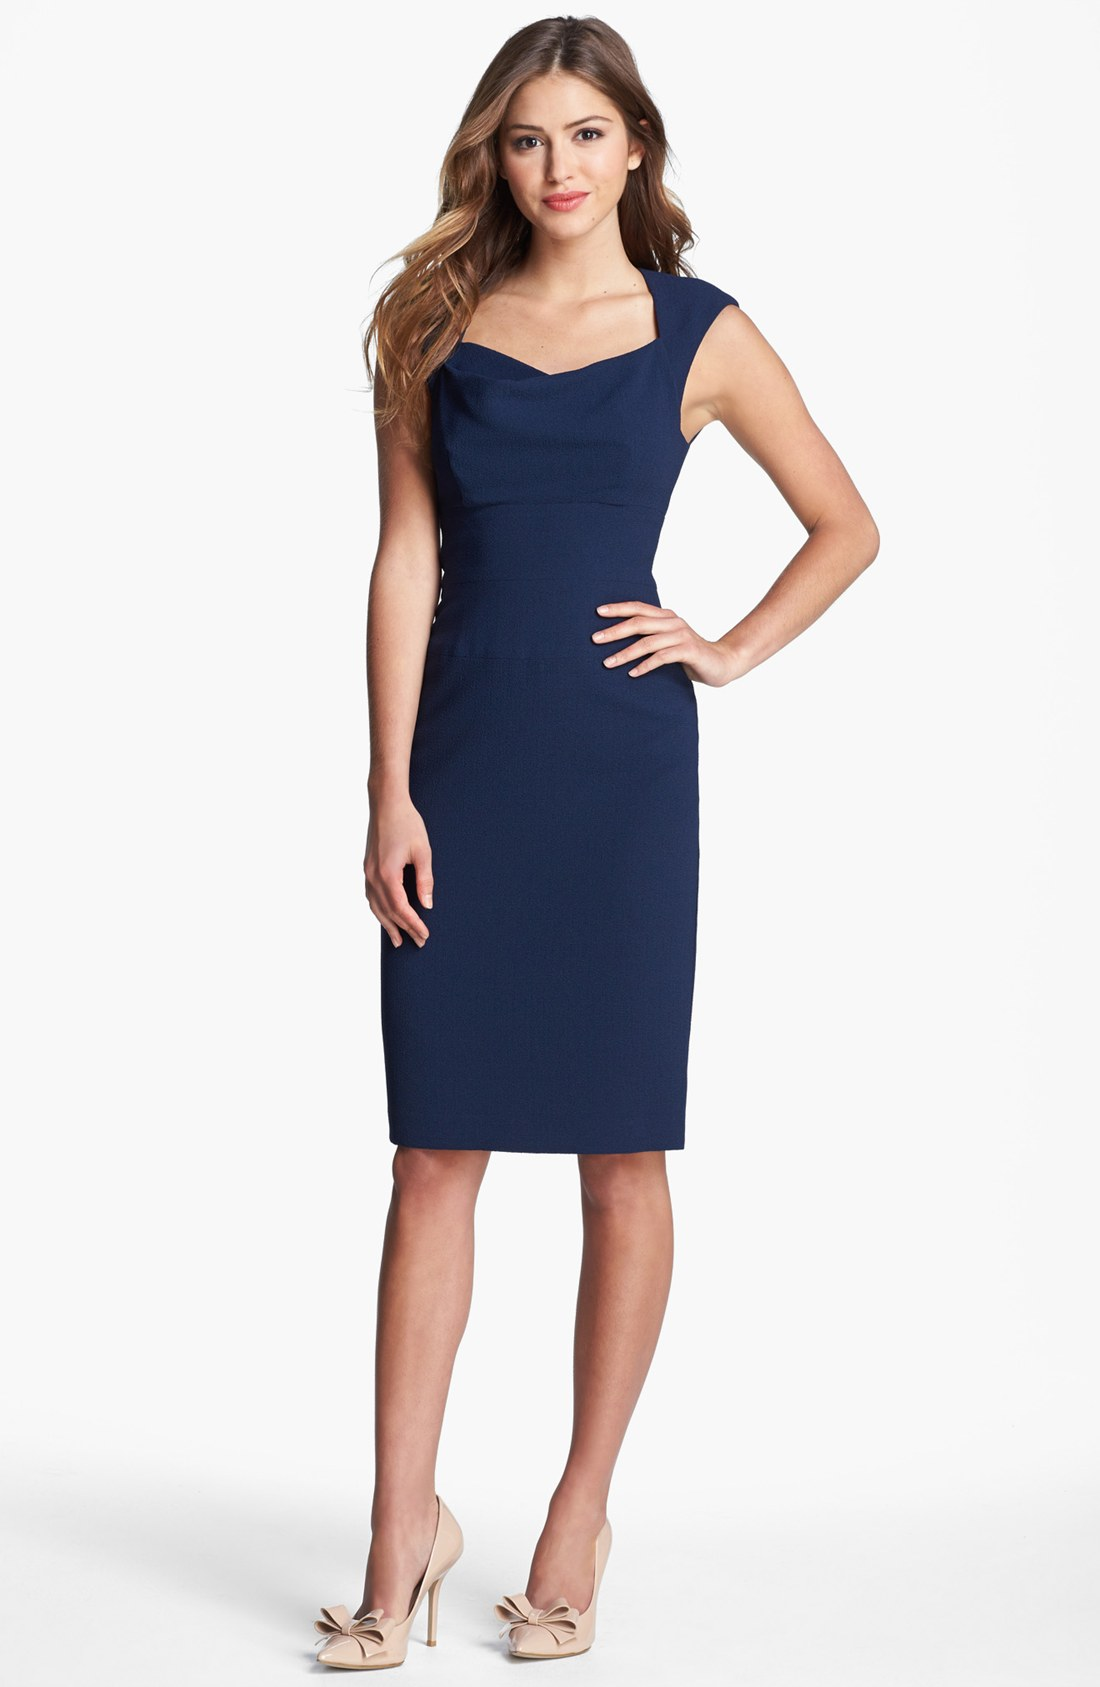 Black halo Catherine Cap Sleeve Sheath Dress in Blue